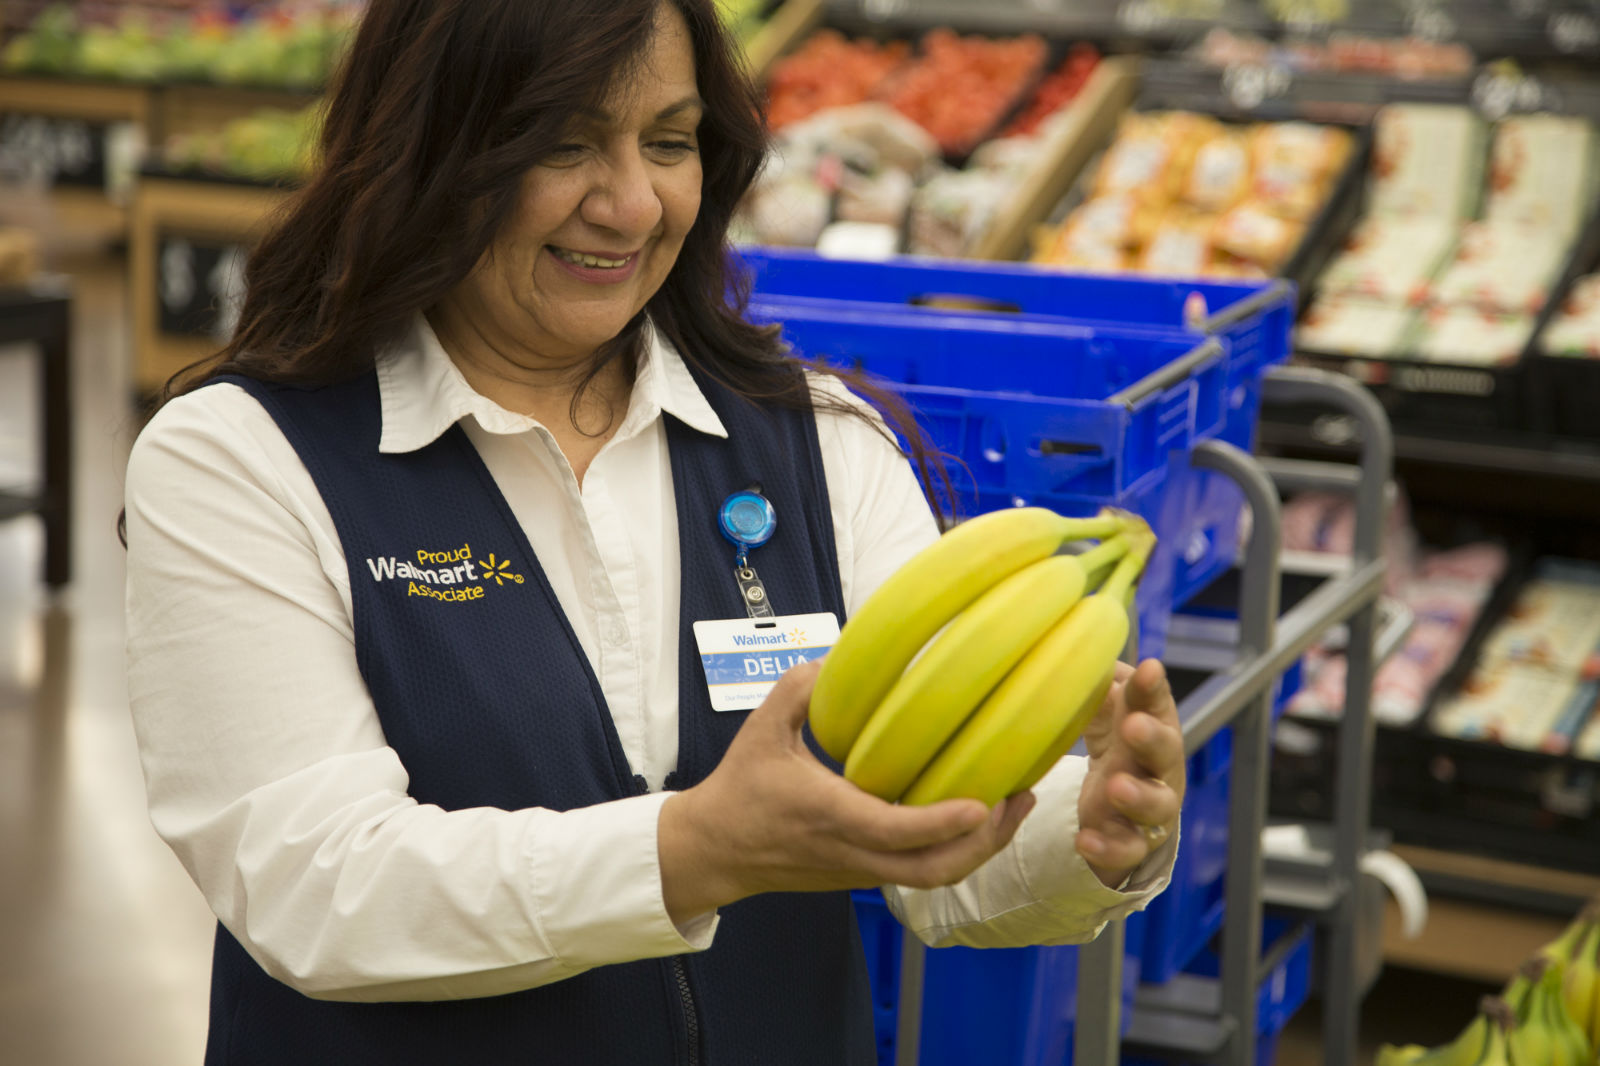 an-associate-gets-bananas-ready-for-grocery-pickup